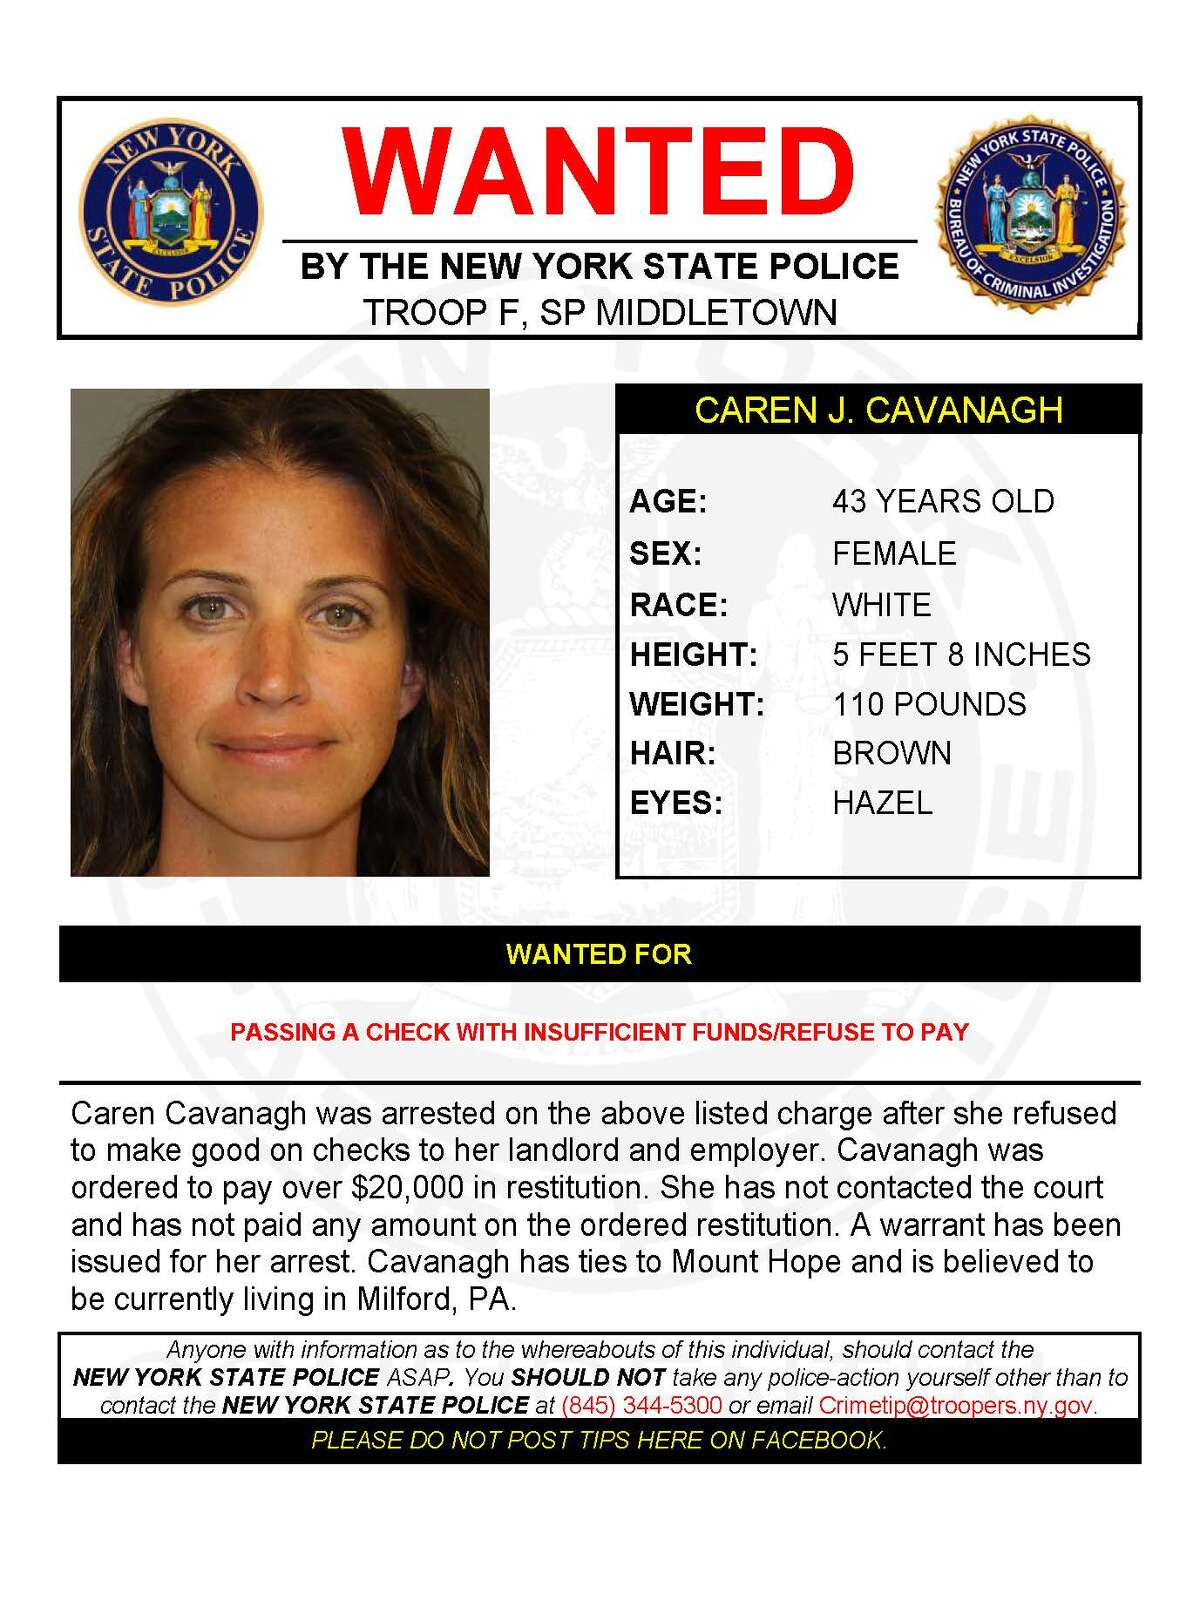 CAREN J. CAVANAGH Caren Cavanagh was arrested for allegedly passing a check with insufficient funds after she refused to make good on checks to her landlord and employer. Cavanagh was ordered to pay over $20,000 in restitution. She has not contacted the court and has not paid any amount on the ordered restitution. A warrant has been issued for her arrest. Cavanagh has ties to Mount Hope and is believed to be currently living in Milford, Penn.